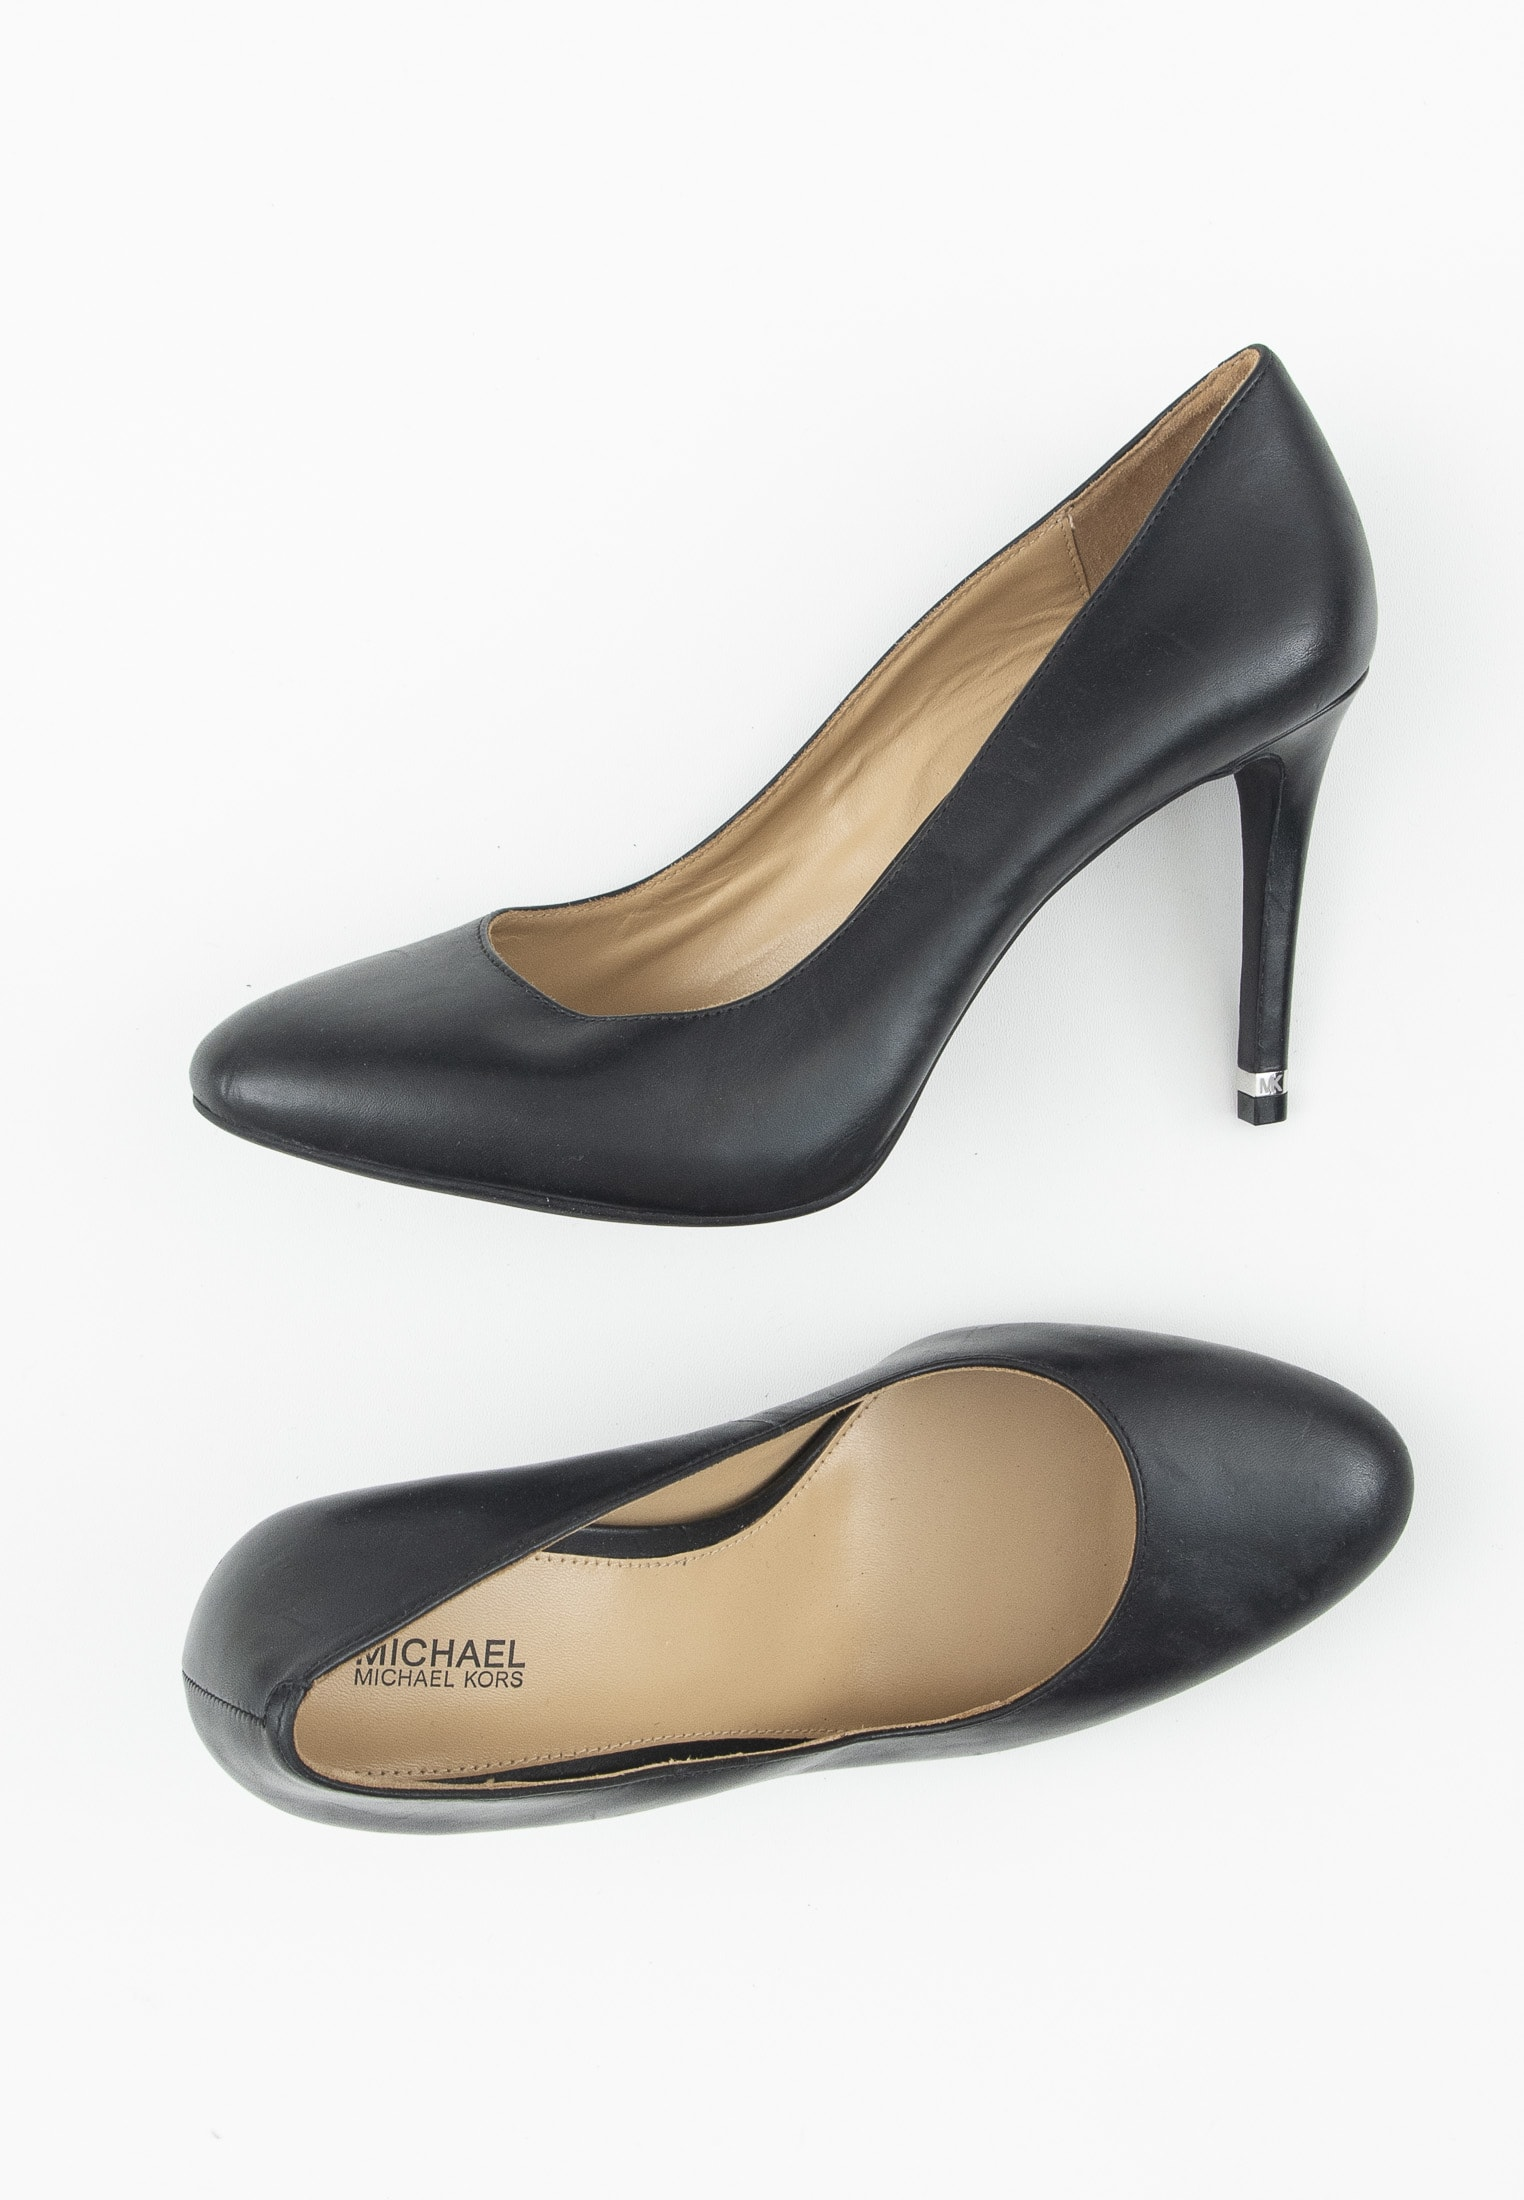 MICHAEL Michael Kors pumps, sort, 41